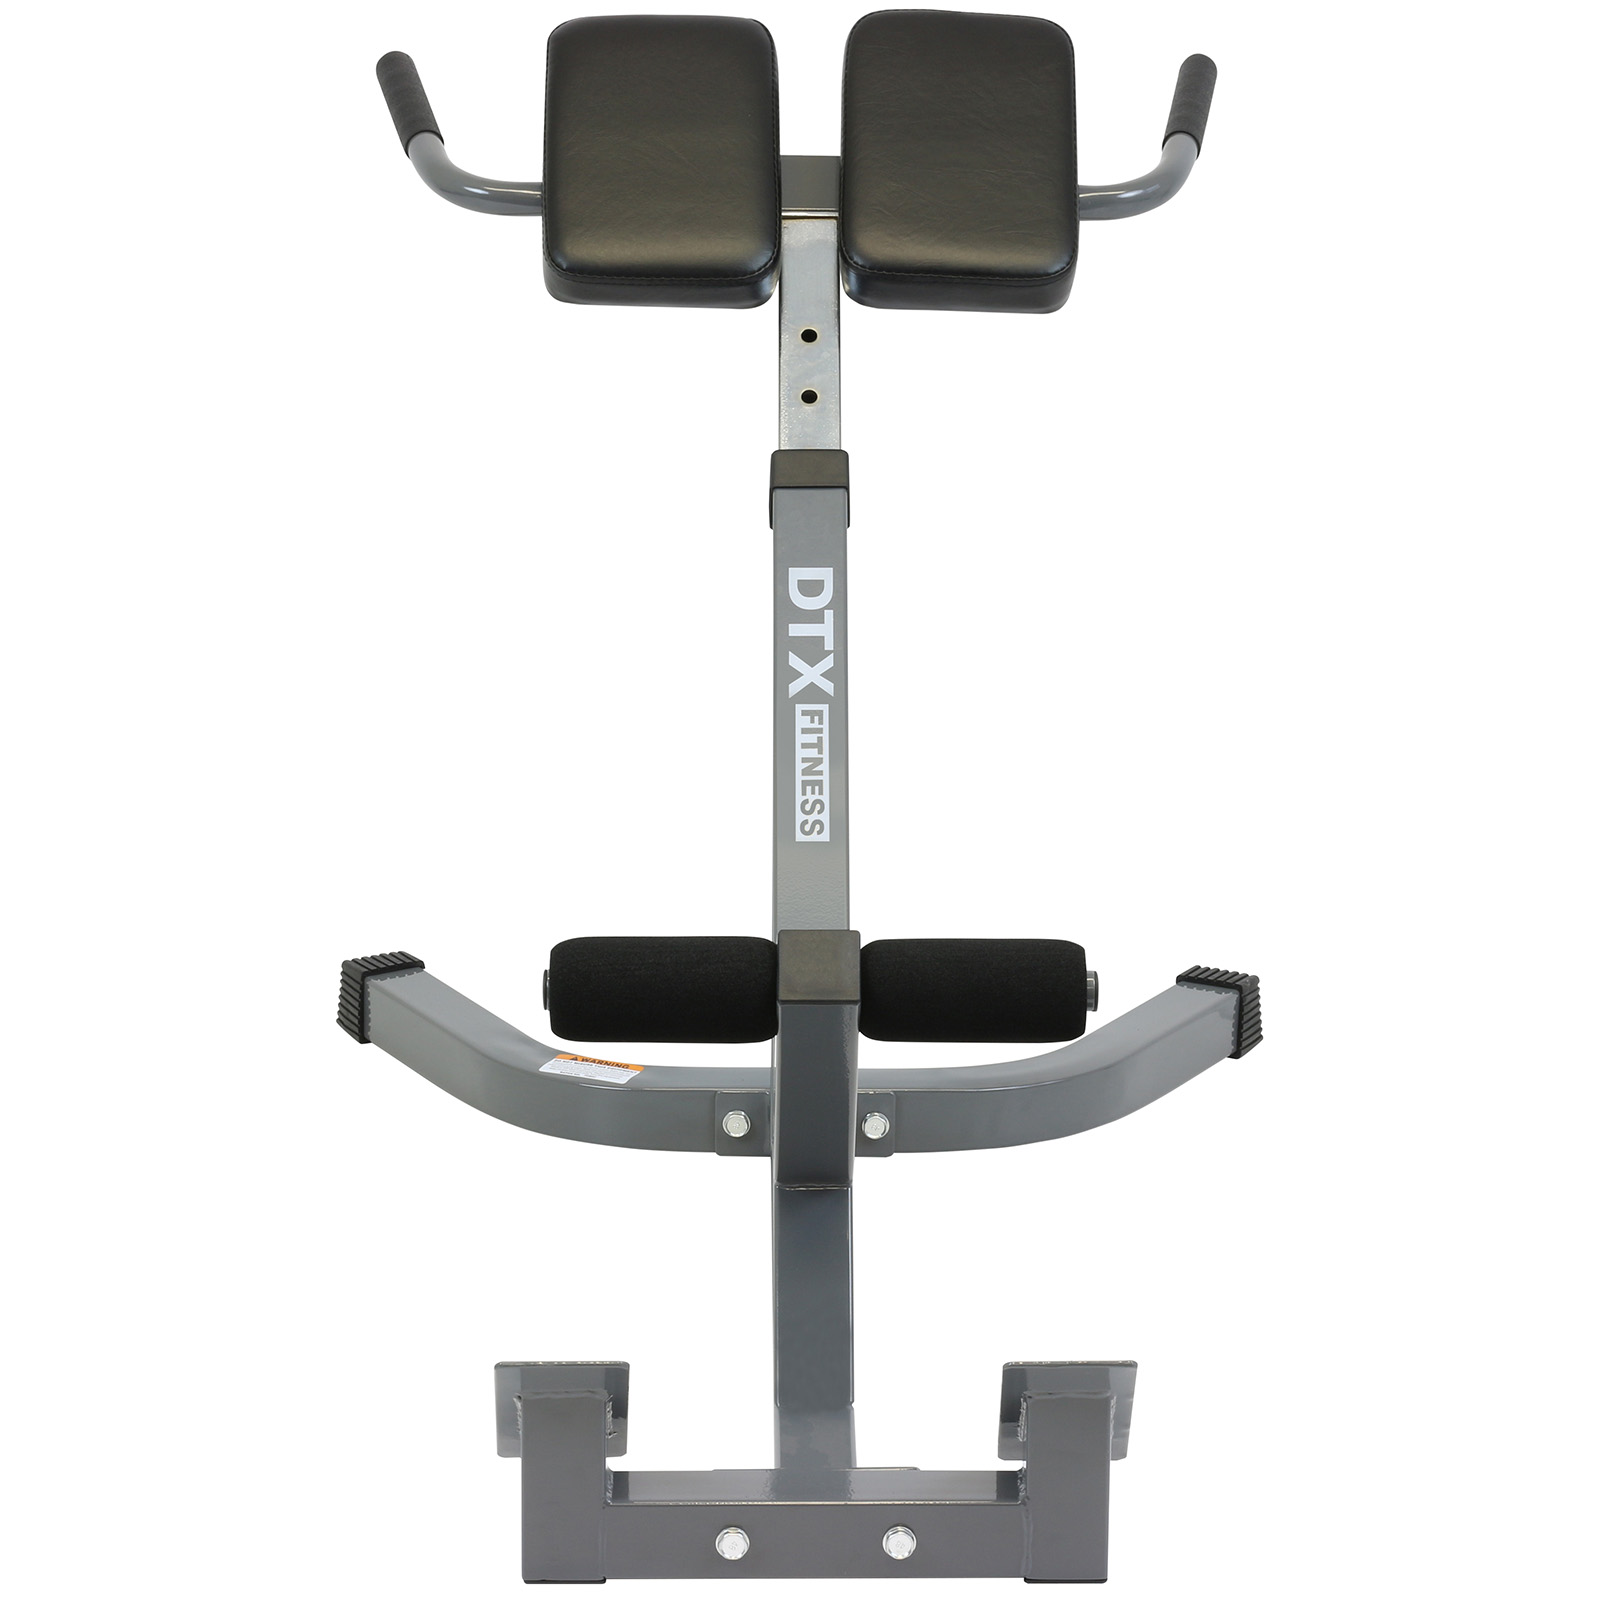 roman chair back extension muscles material to cover dining chairs dtx fitness hyper exercise bench